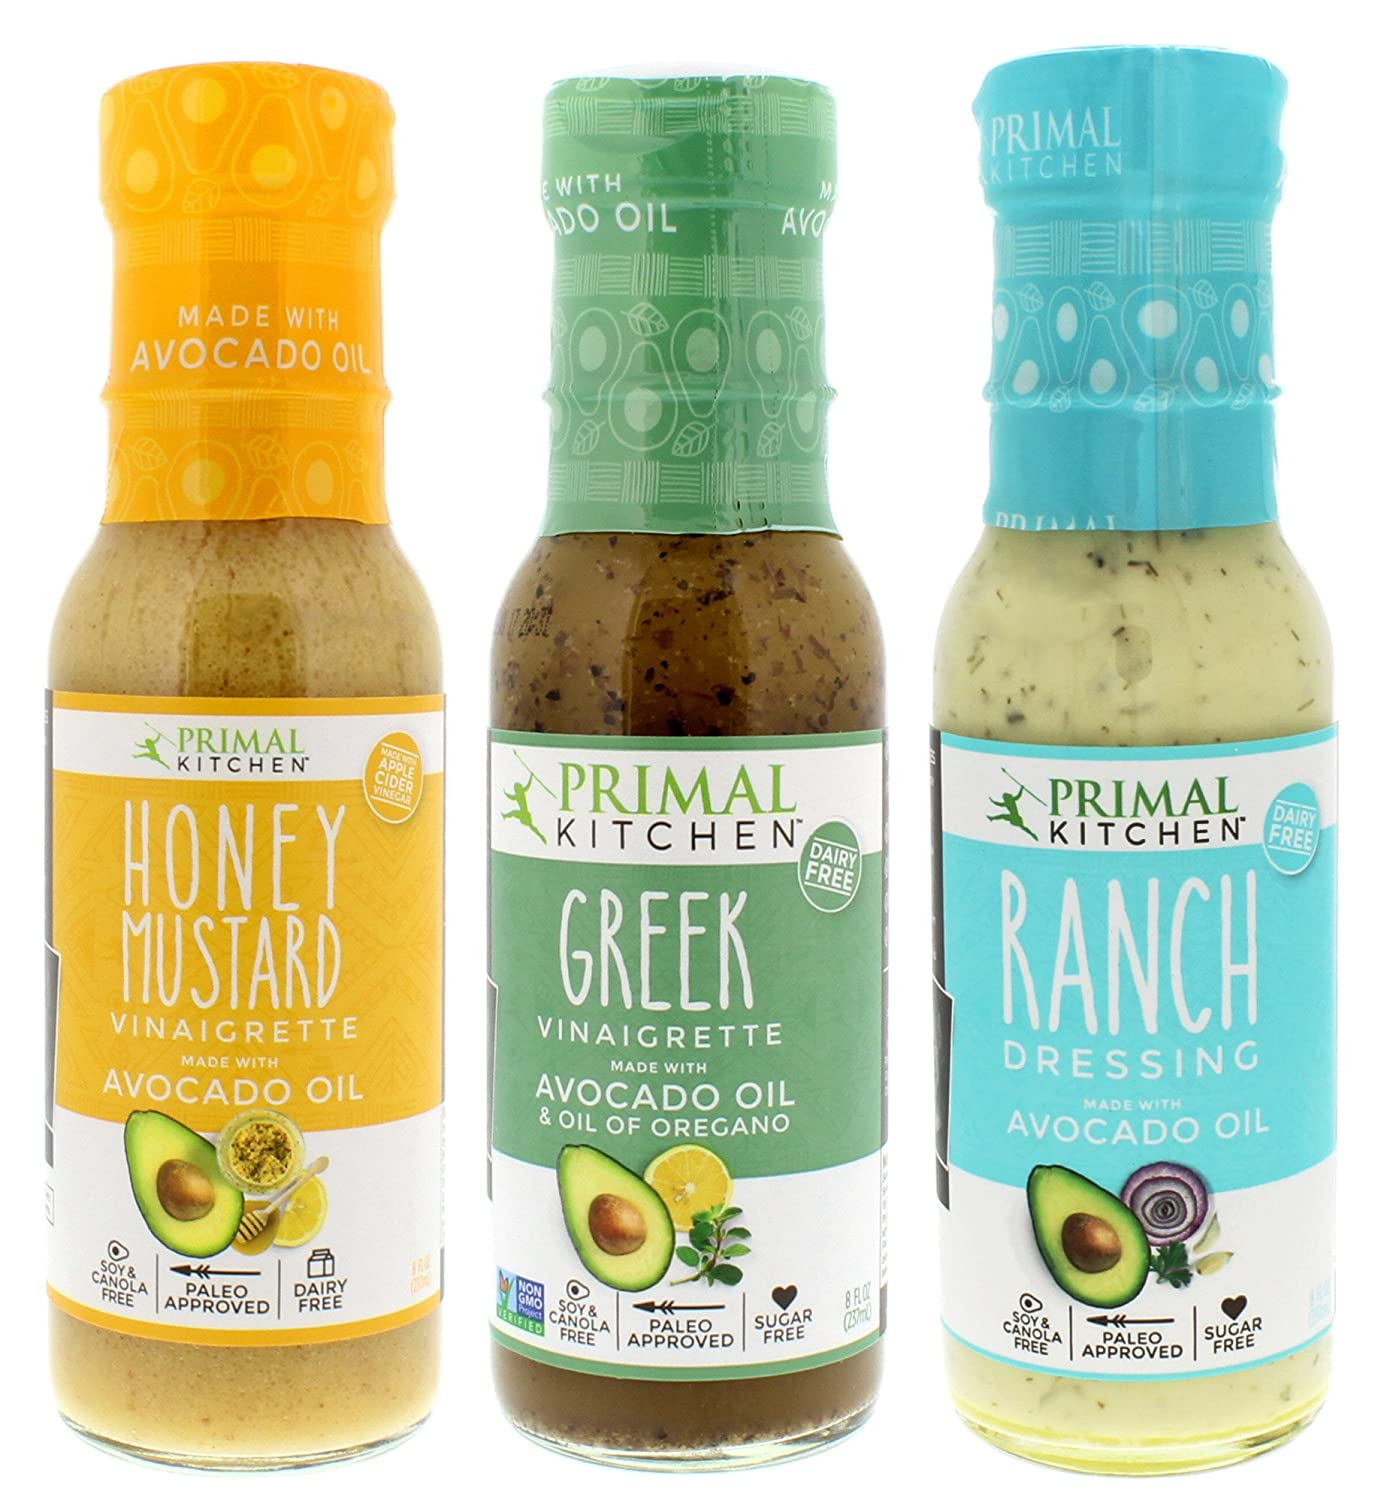 Image Result For Primal Kitchen Ranch Dressing